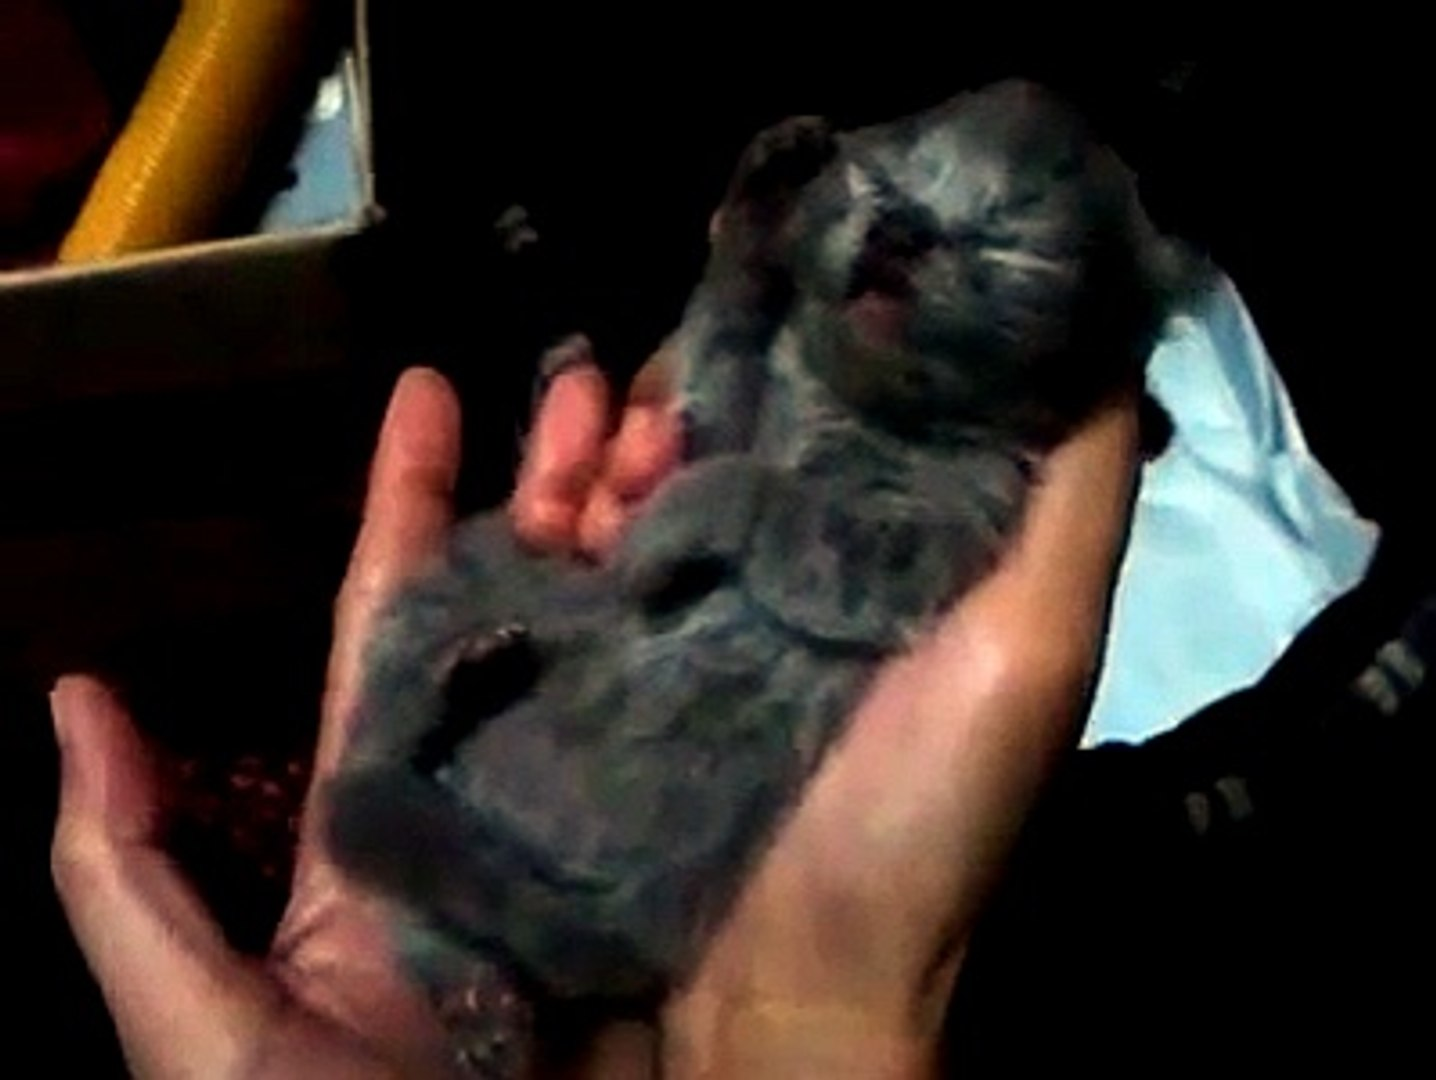 FUNNY VIDEOS: Funny Cats - Cute baby Cats - Baby Cats Video - Baby cat Sleep - Baby Cats 2014